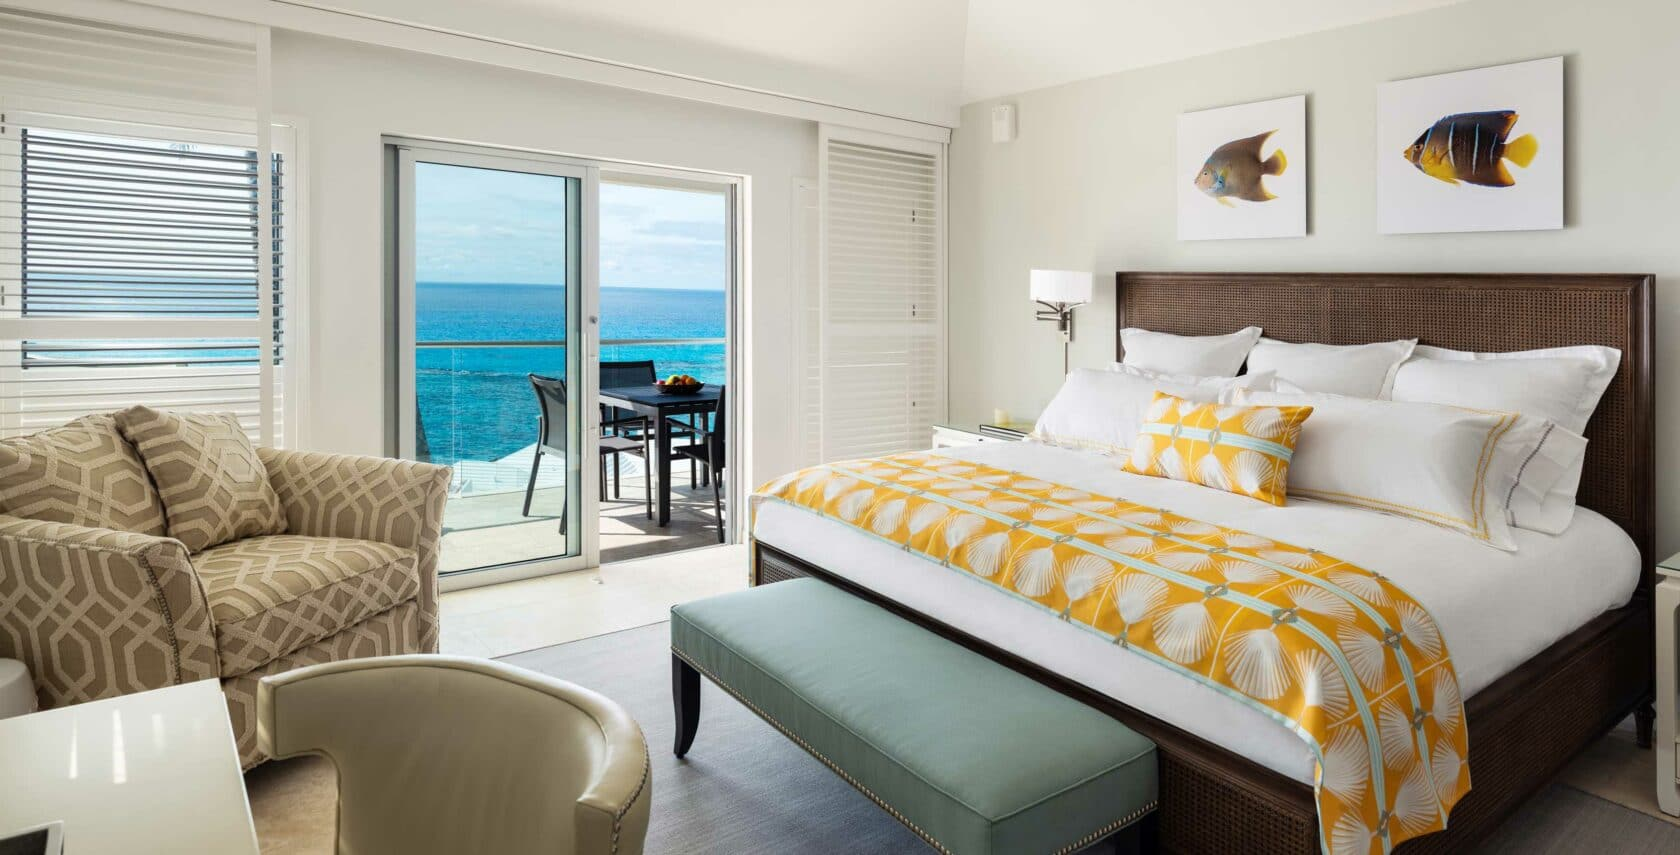 A bedroom with sliding glass doors leading outside.